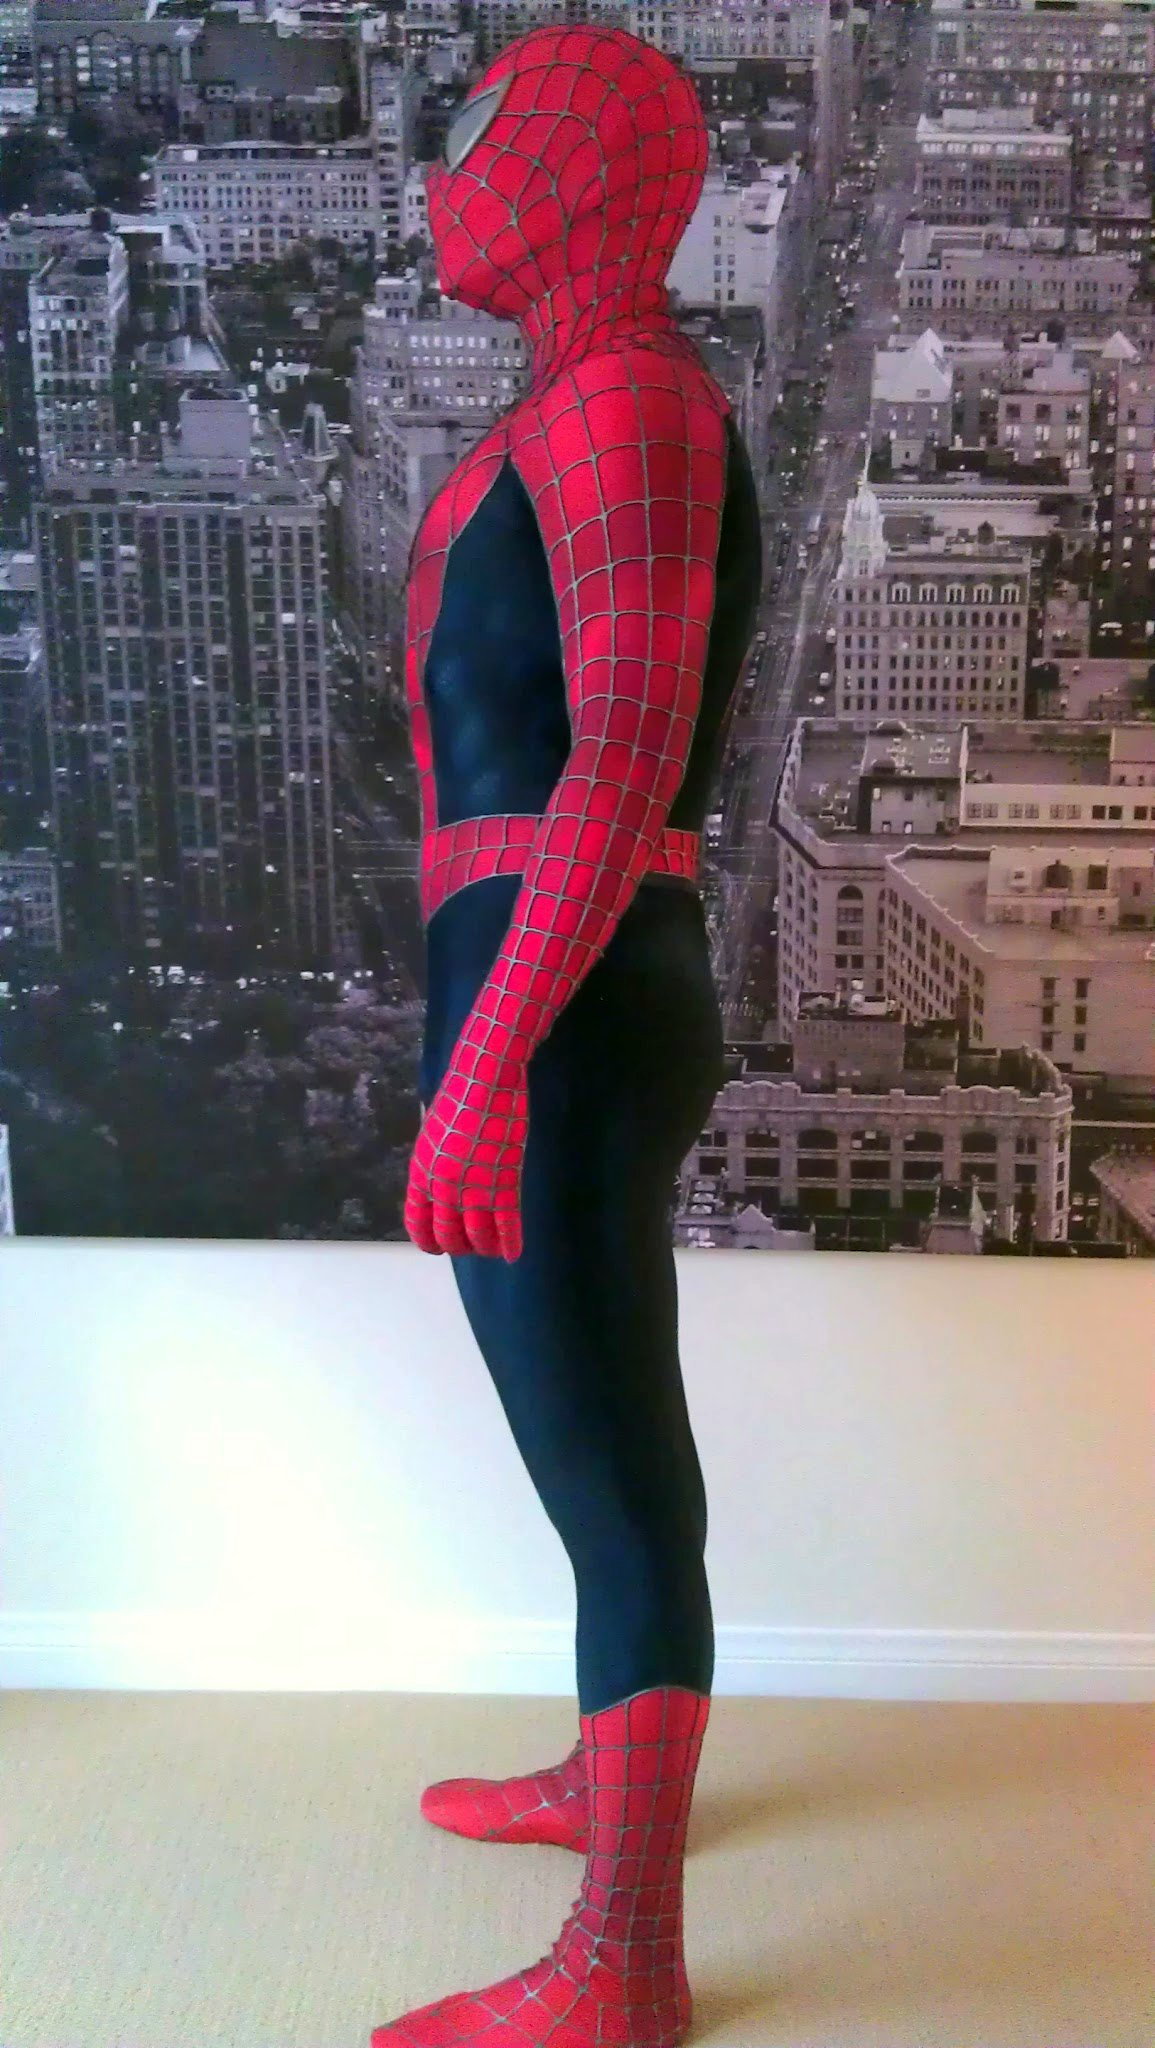 How To Get Ottermode Ideal height weight for spideyHow To Get Ottermode